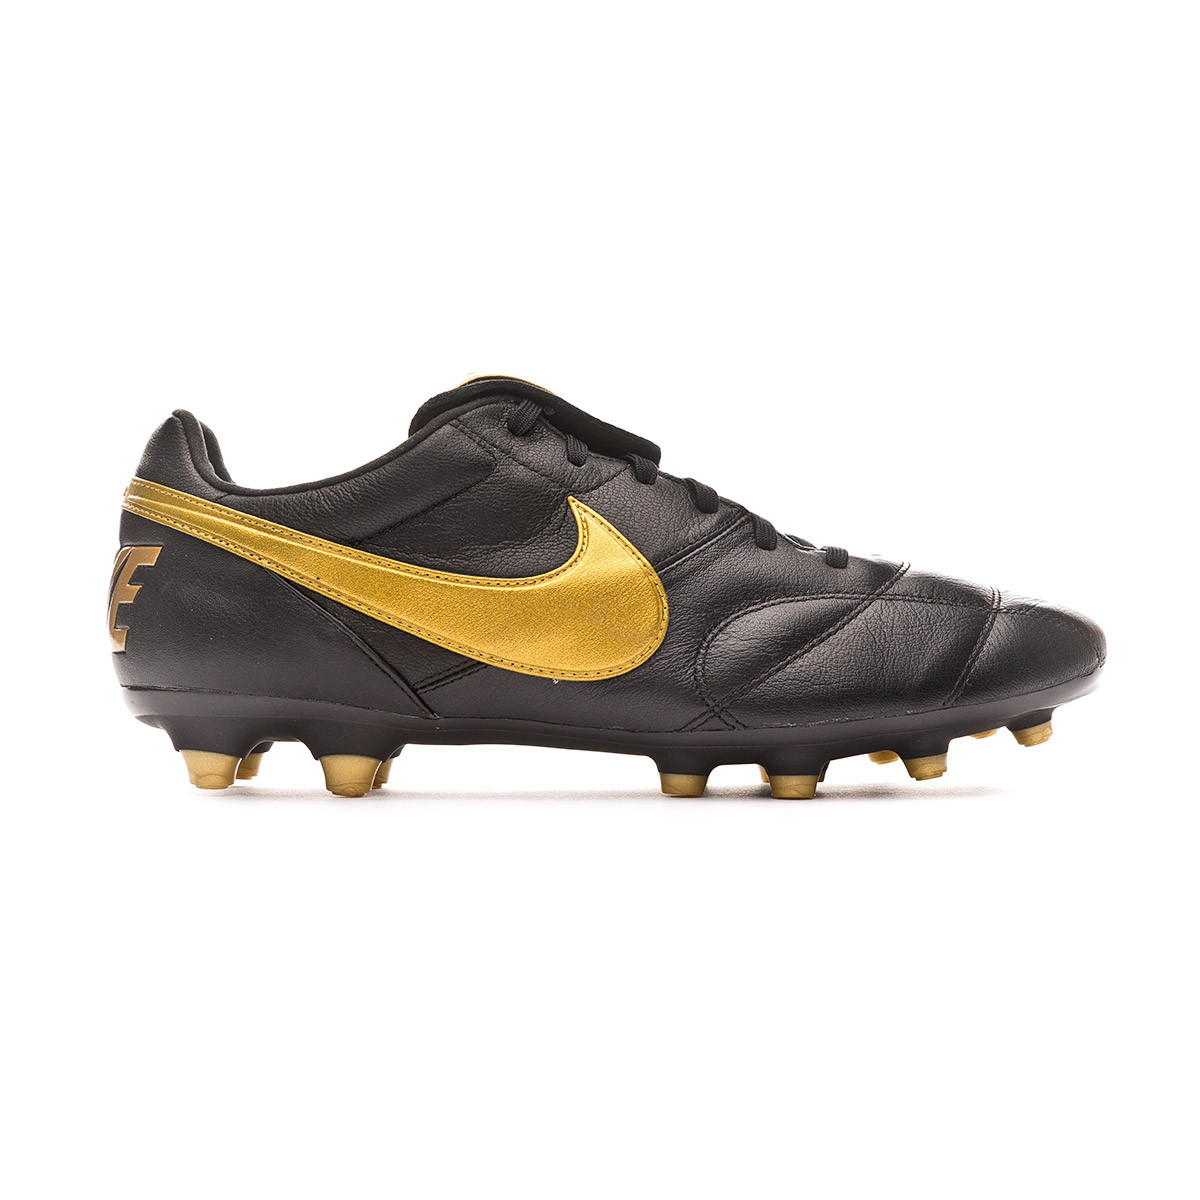 c3fcf431dc7d Football Boots Nike Tiempo Premier II FG Black-Metallic vivid gold-Black -  Football store Fútbol Emotion